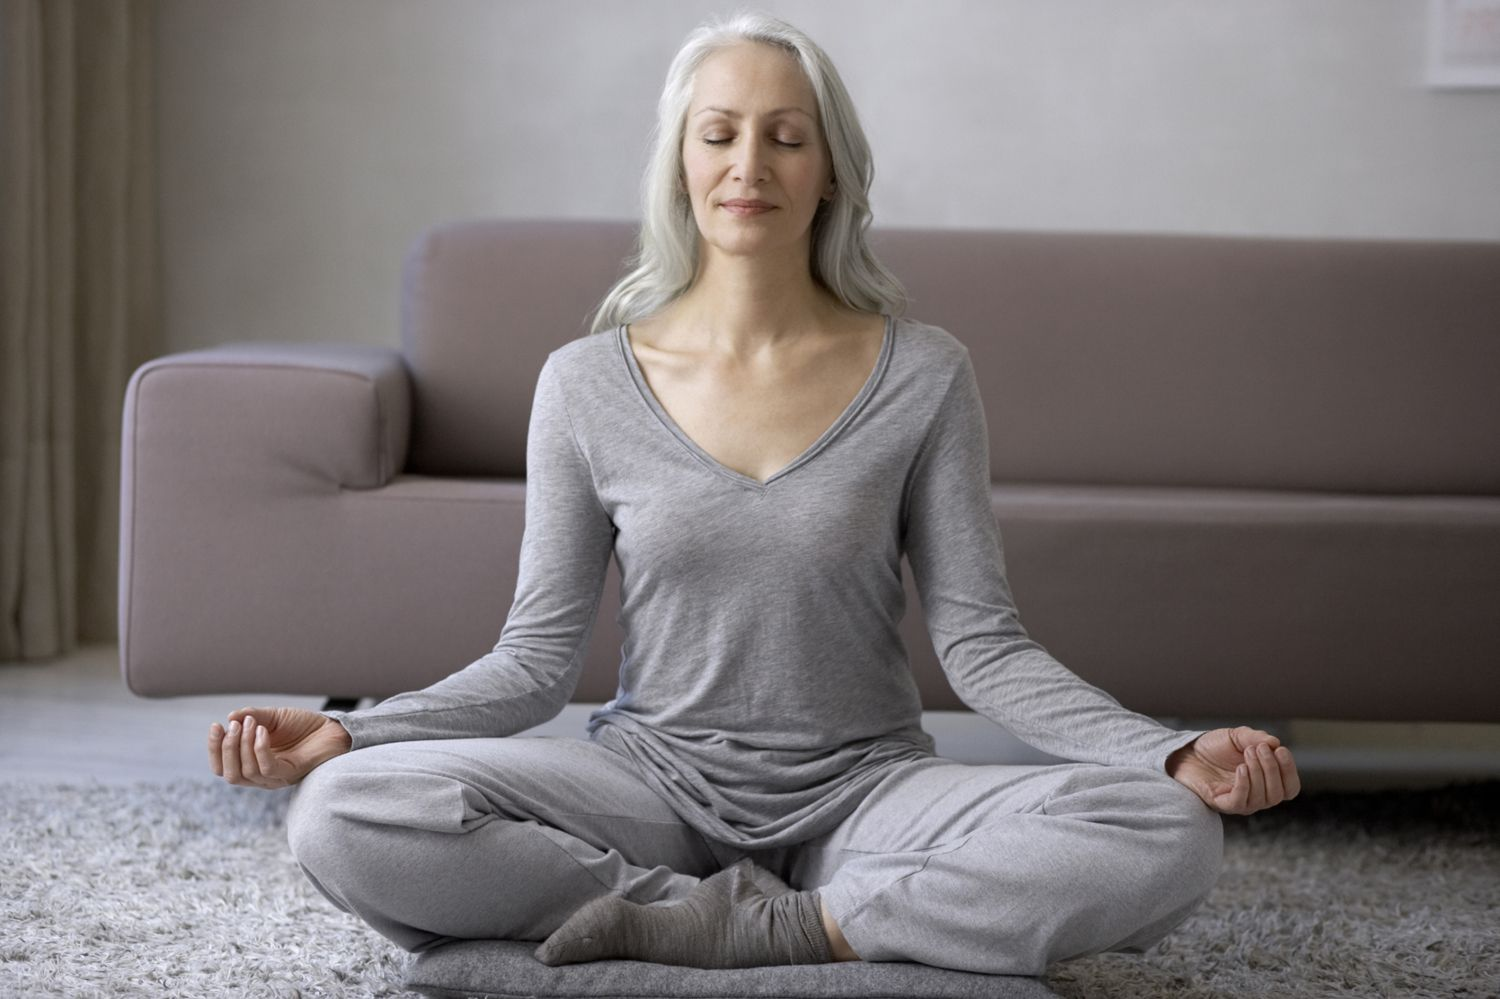 Follow These Steps to Start Meditating at Home